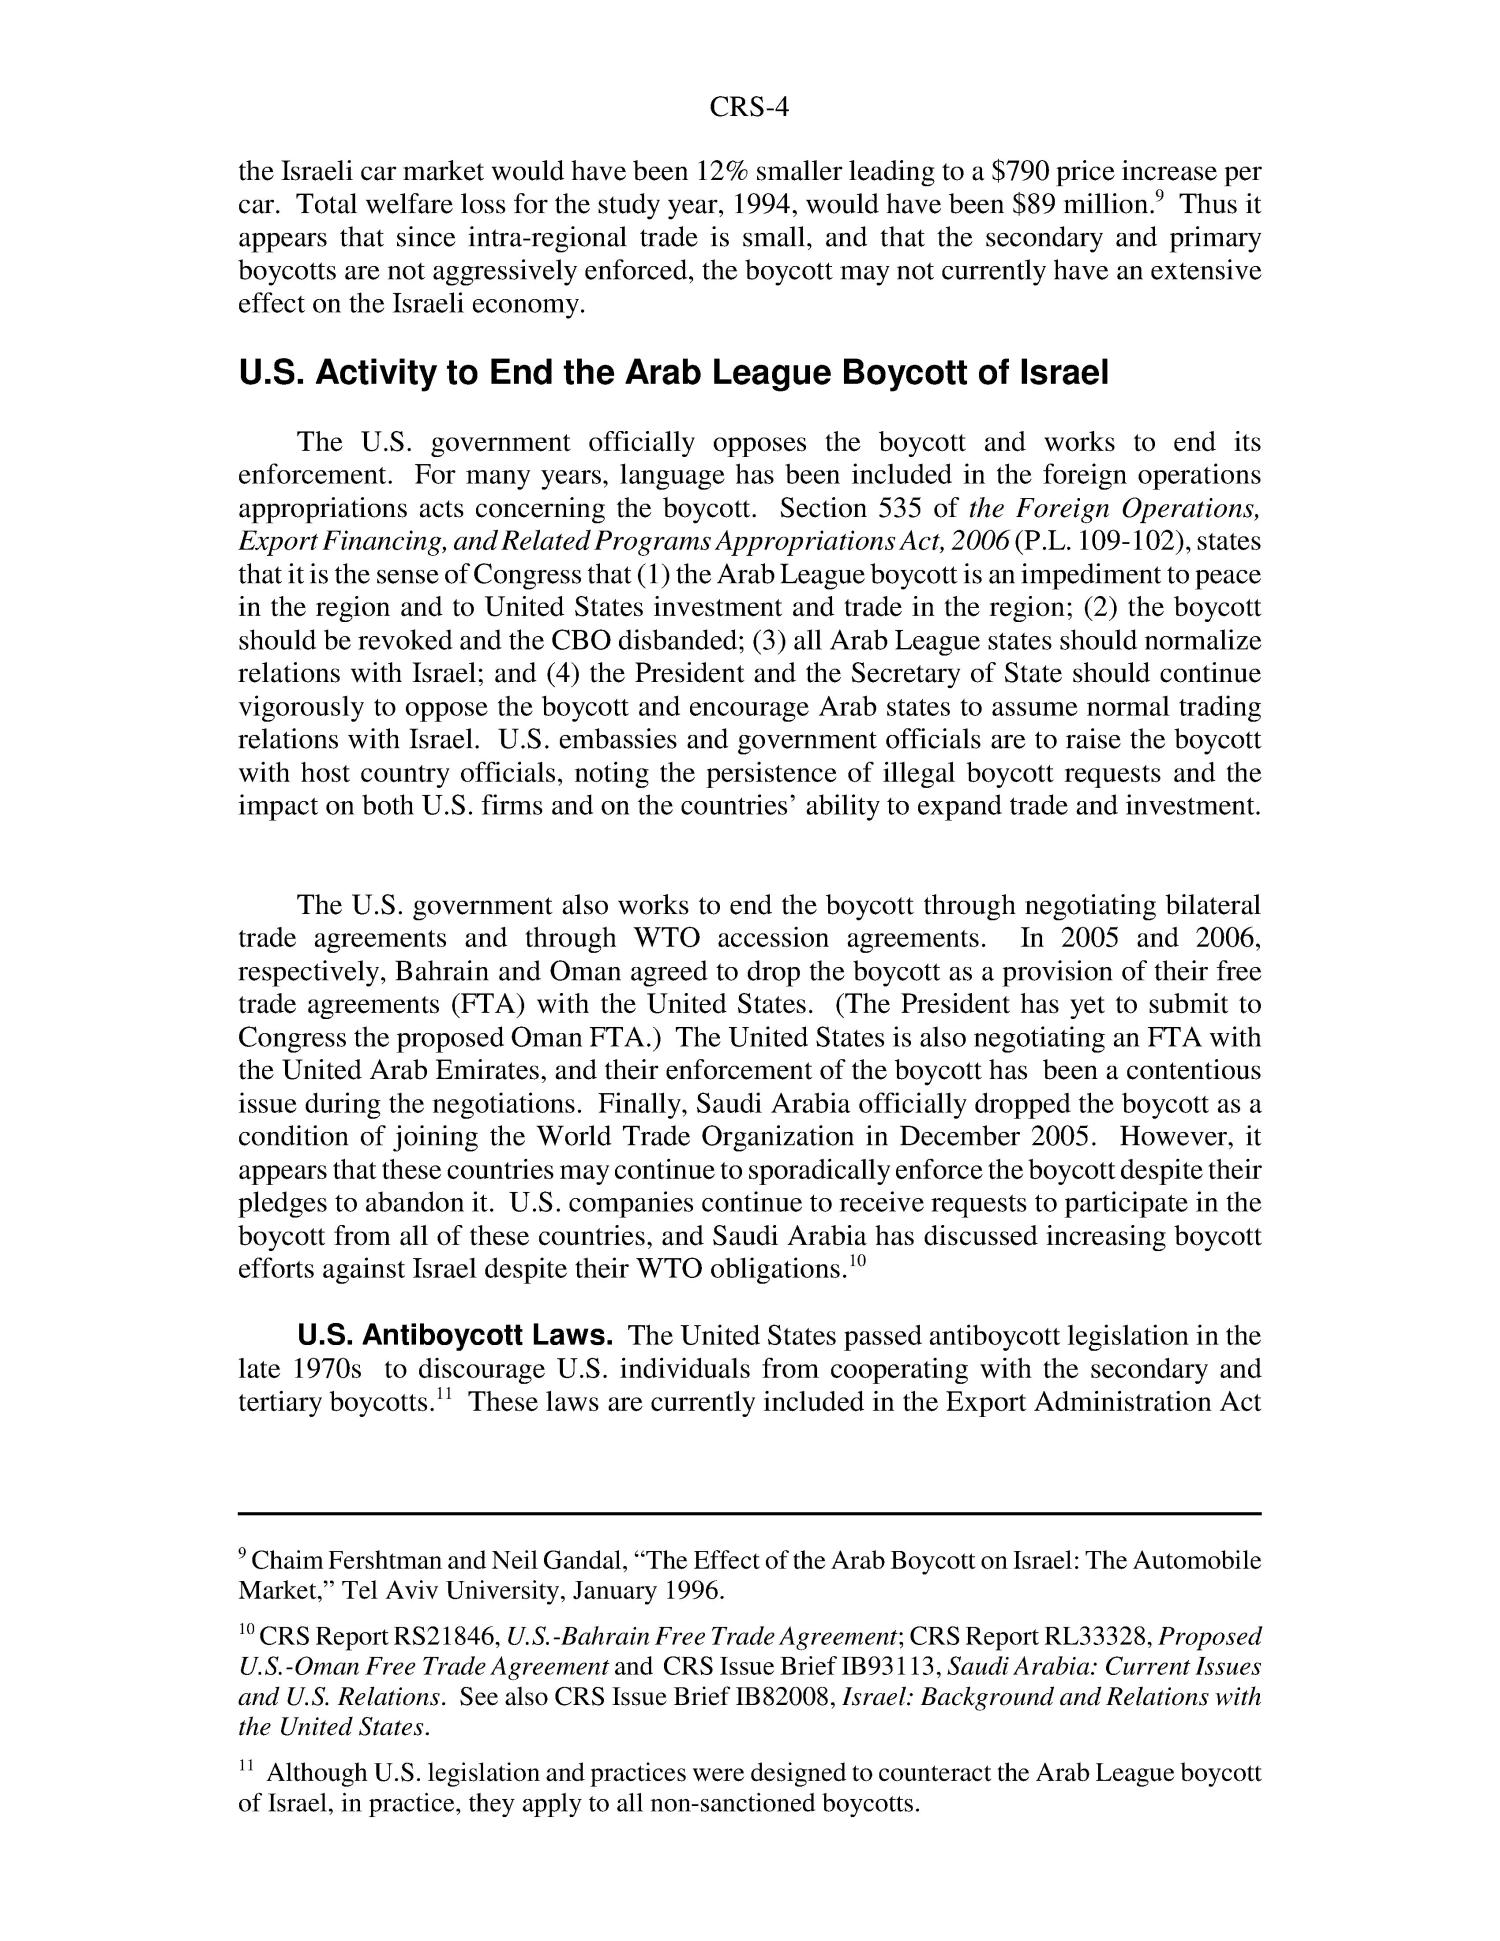 Arab League Boycott of Israel                                                                                                      [Sequence #]: 4 of 6